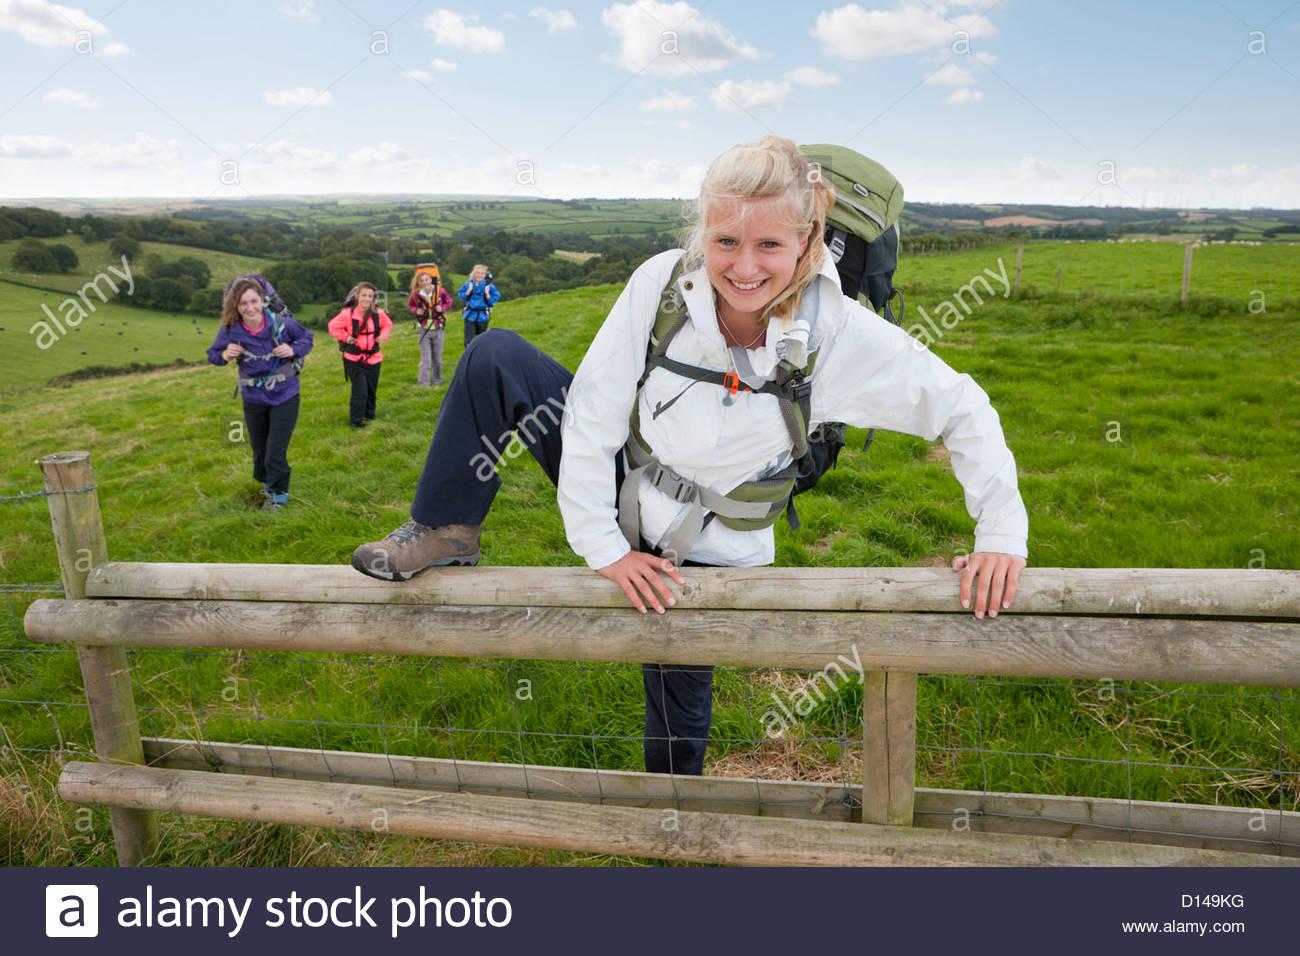 Smiling girl with backpack climbing fence in field Stock Photo